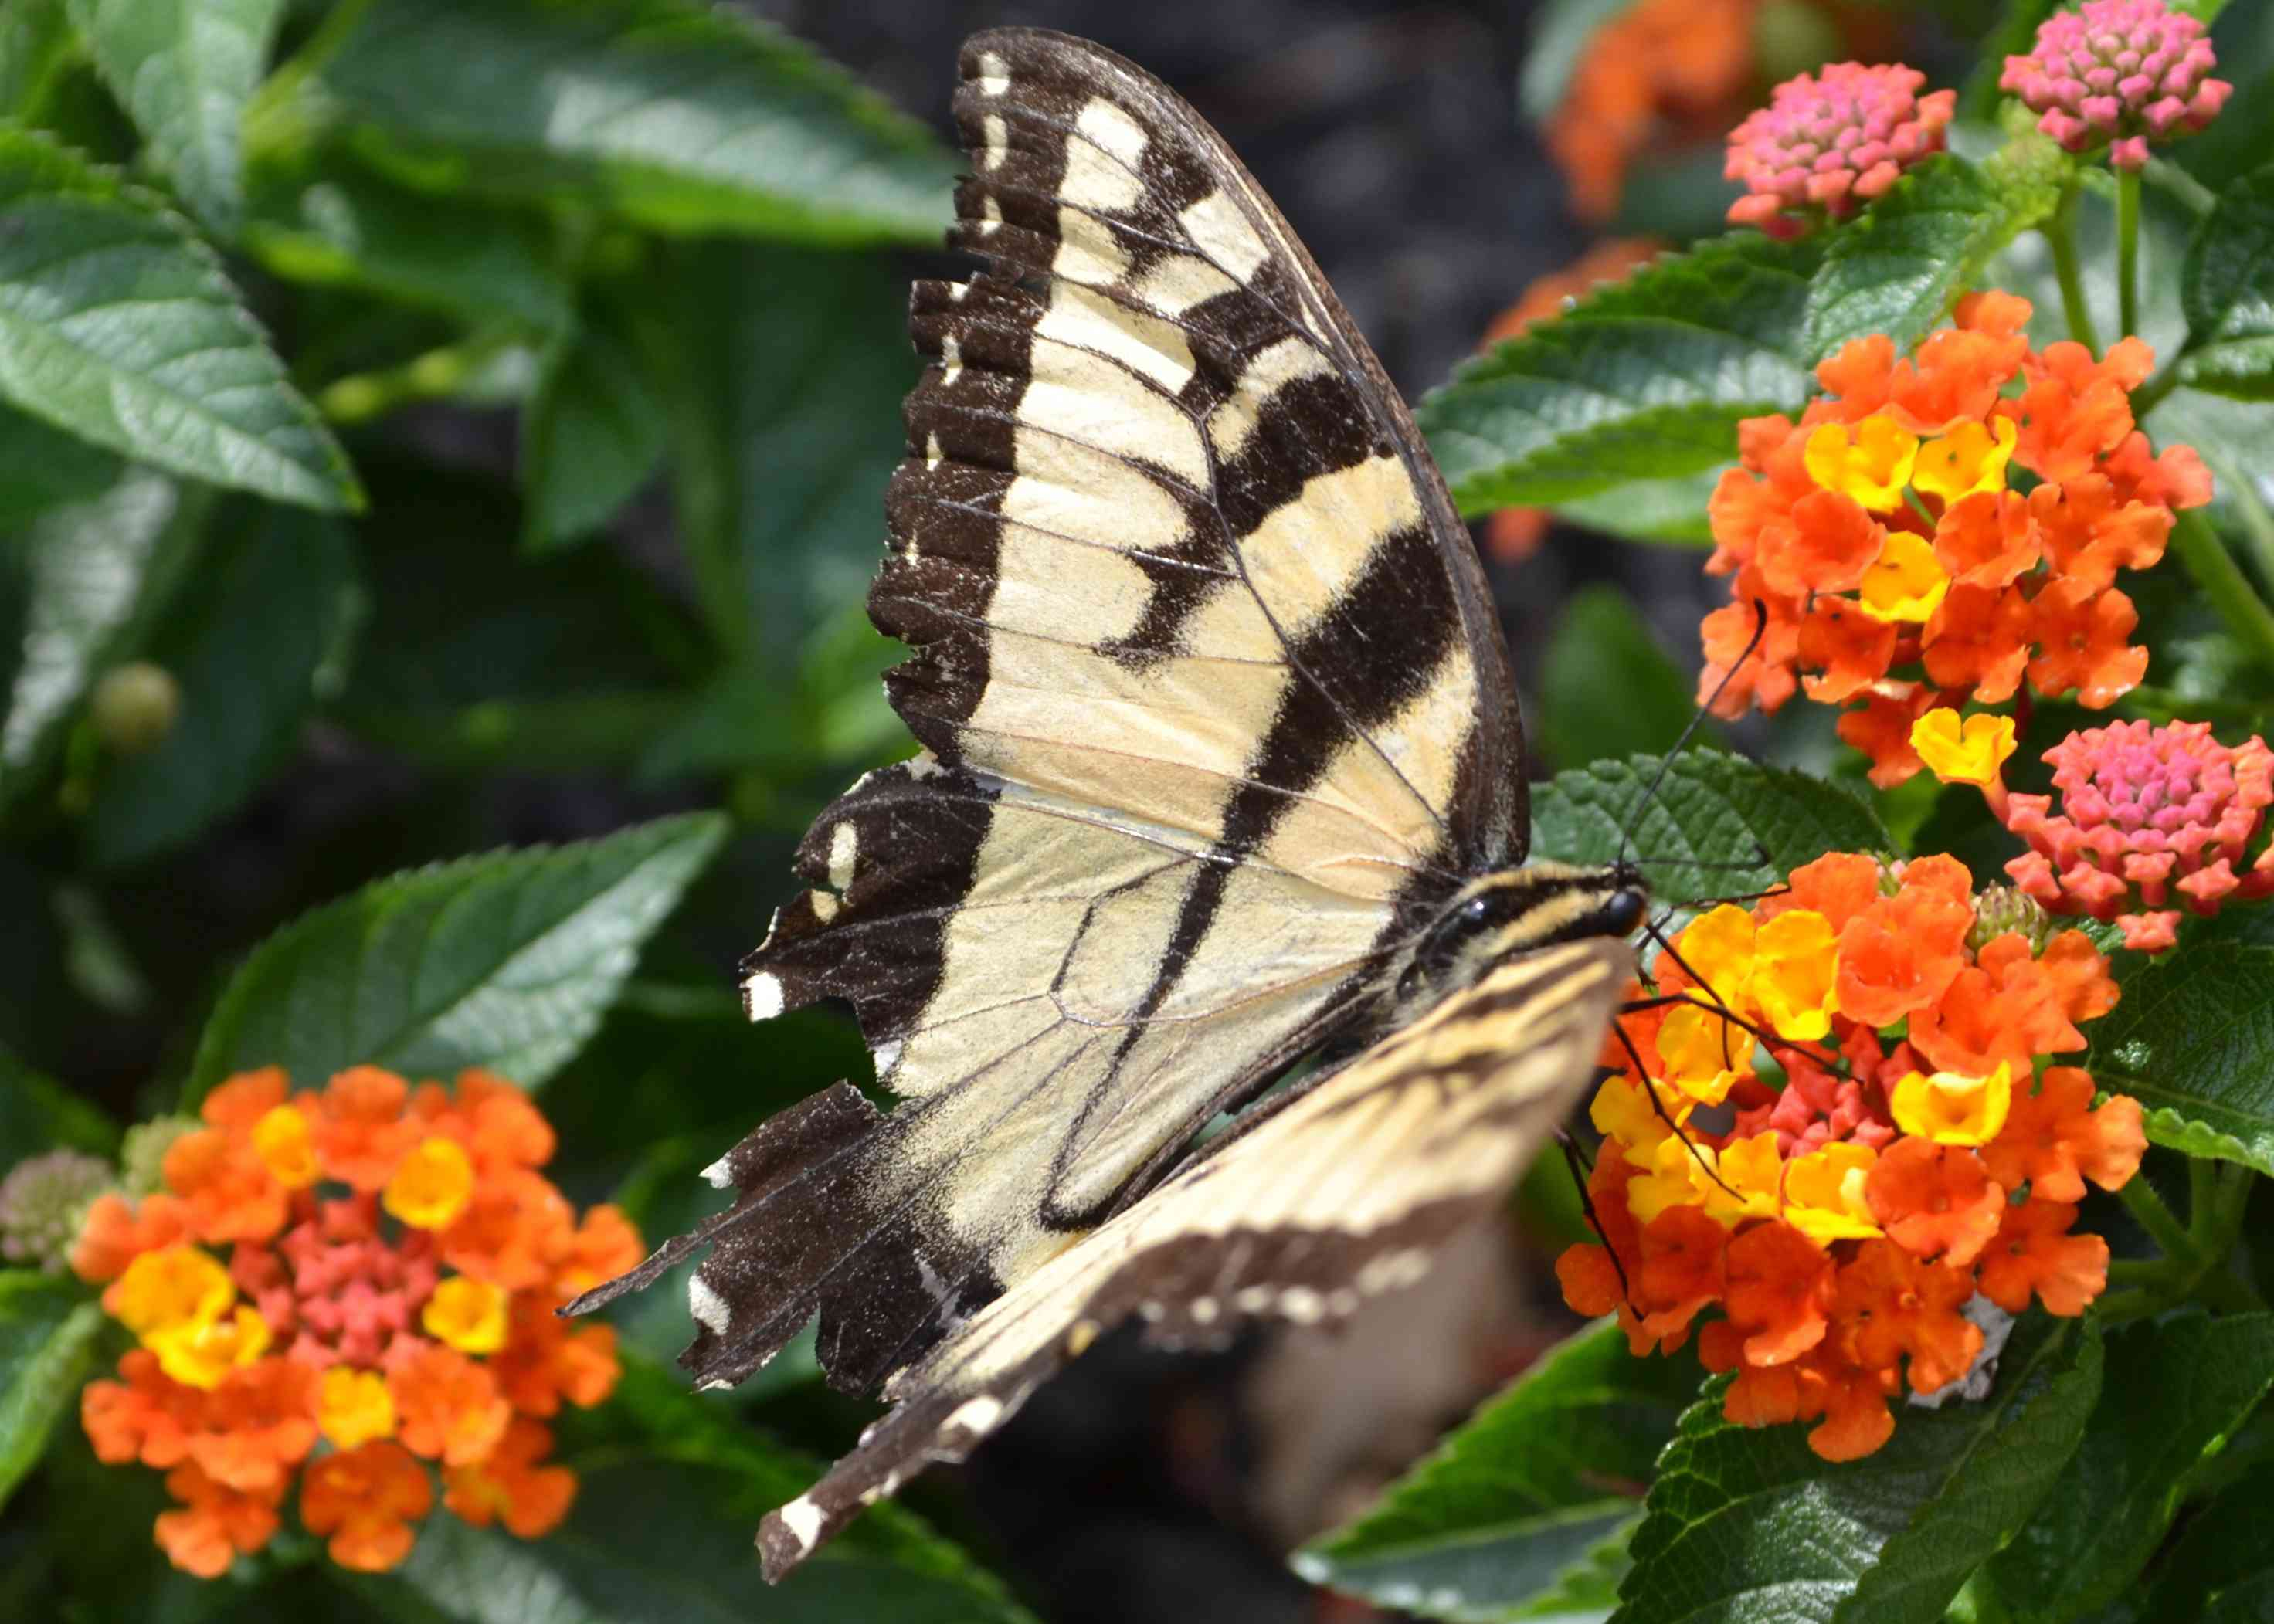 Bloodflower plant with white and black butterfly on tiny clusters of yellow and orange flowers